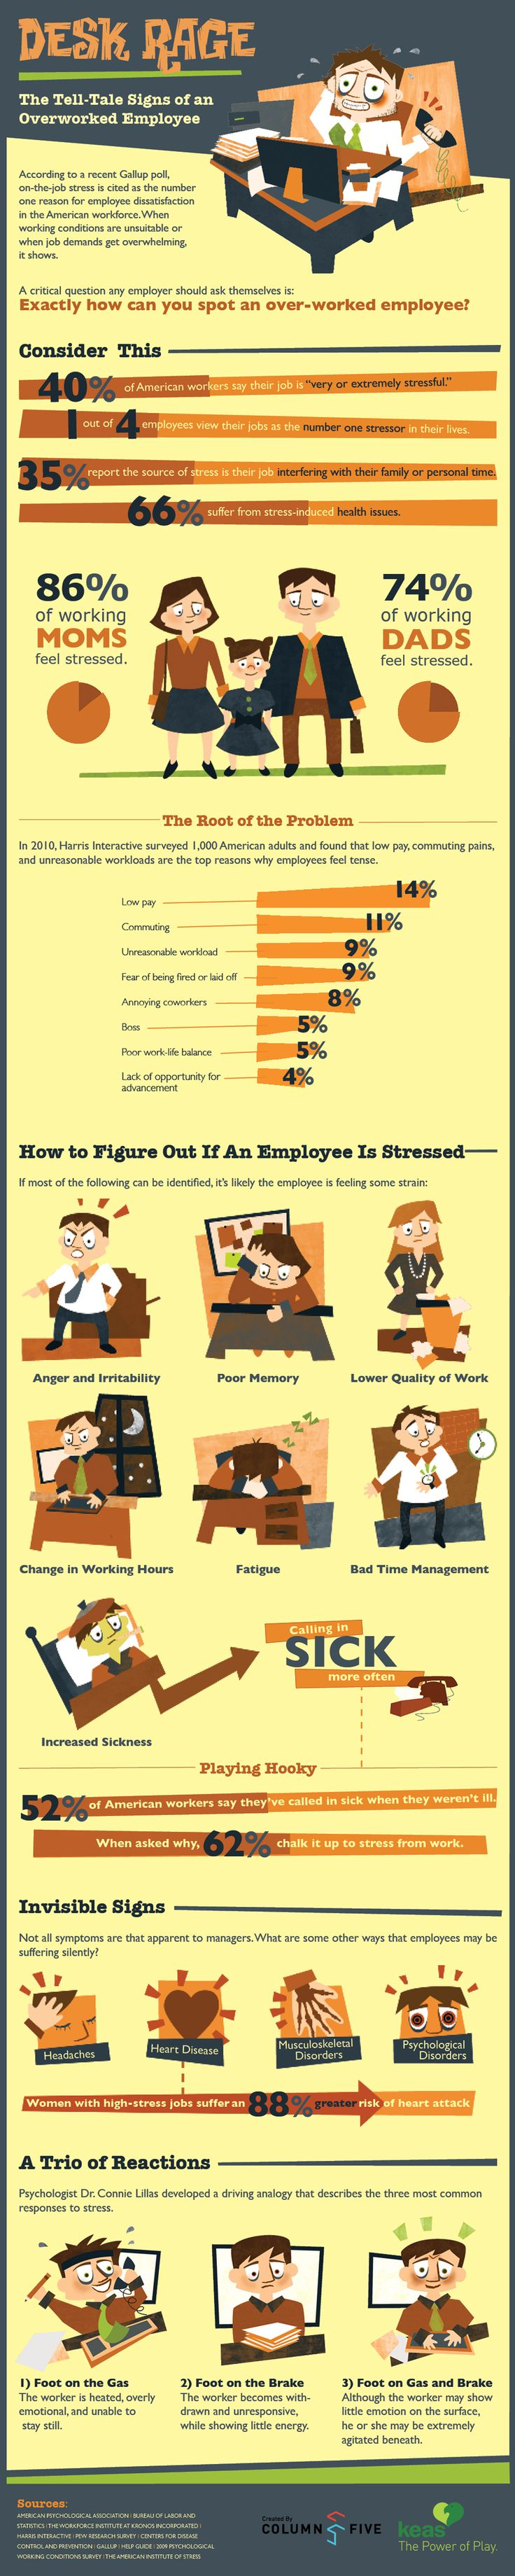 [Infographic]Tell-Tale signs your employee is overworkedWork Stress, Stress At Work, Tell Tal Signs, Desks Rage, Overworked Employee, Coping Skills, Infographic, Feelings, Overworked Employment